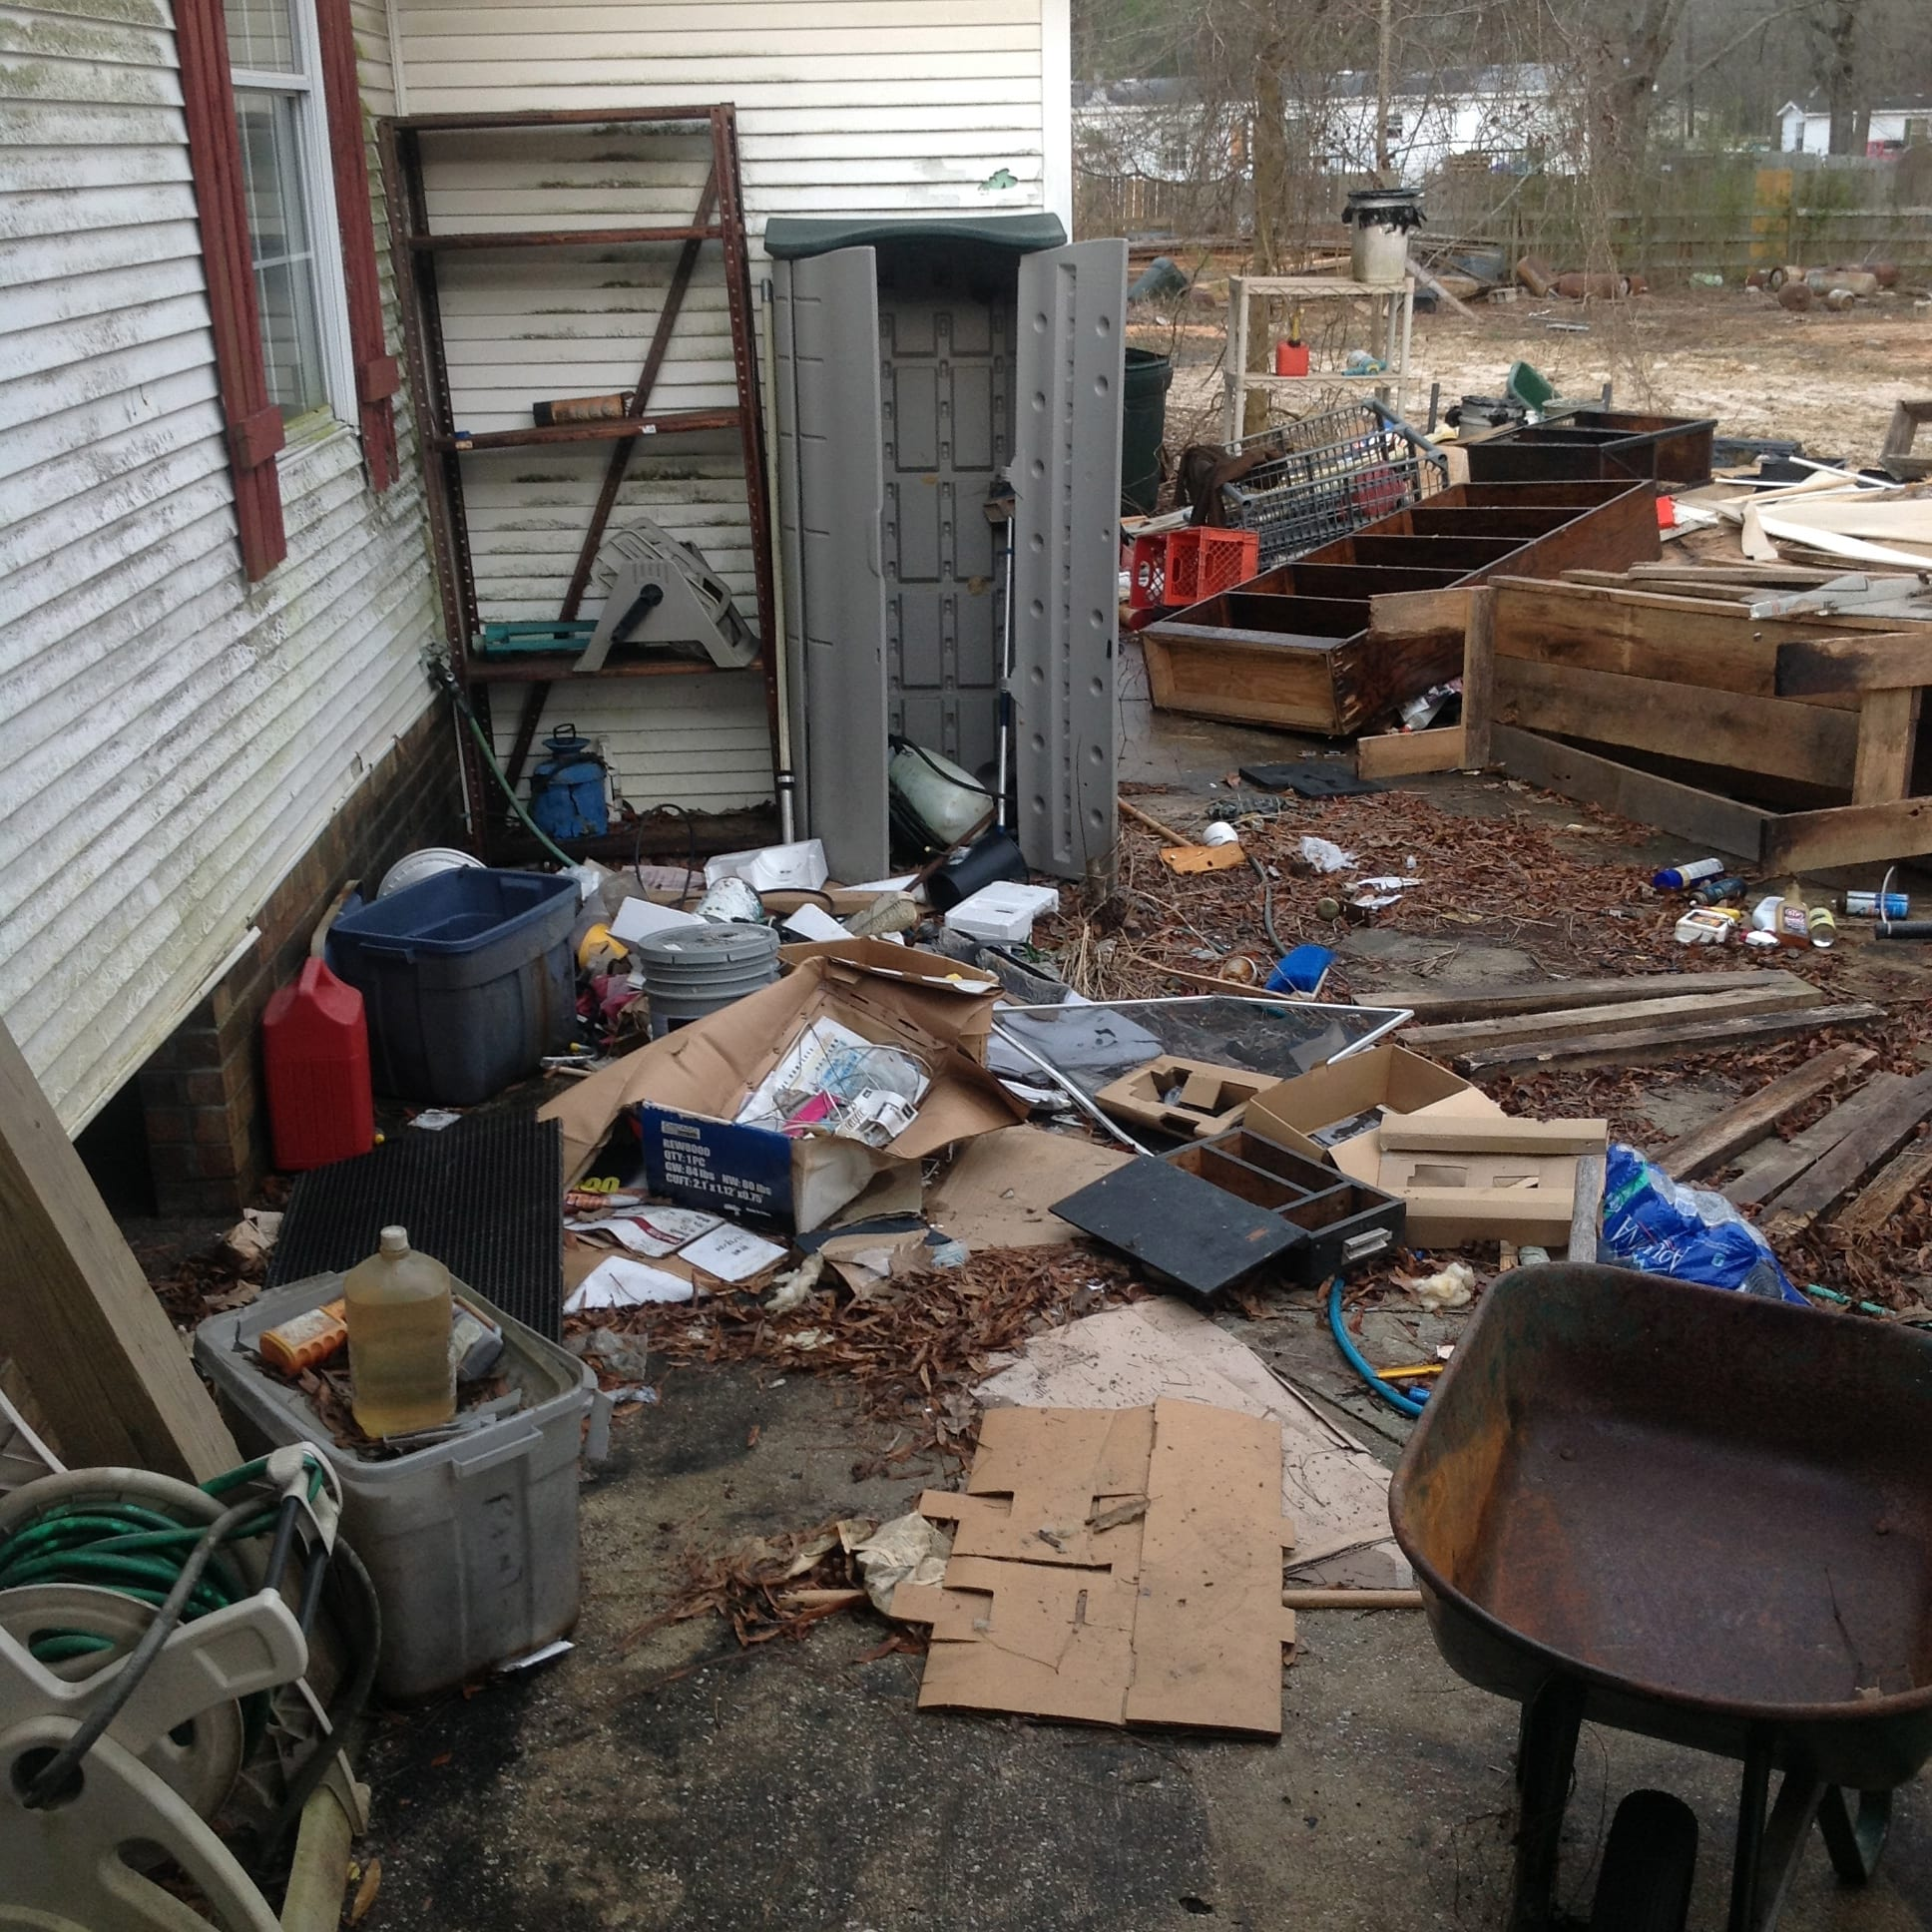 Residential Removal Of Junk Image